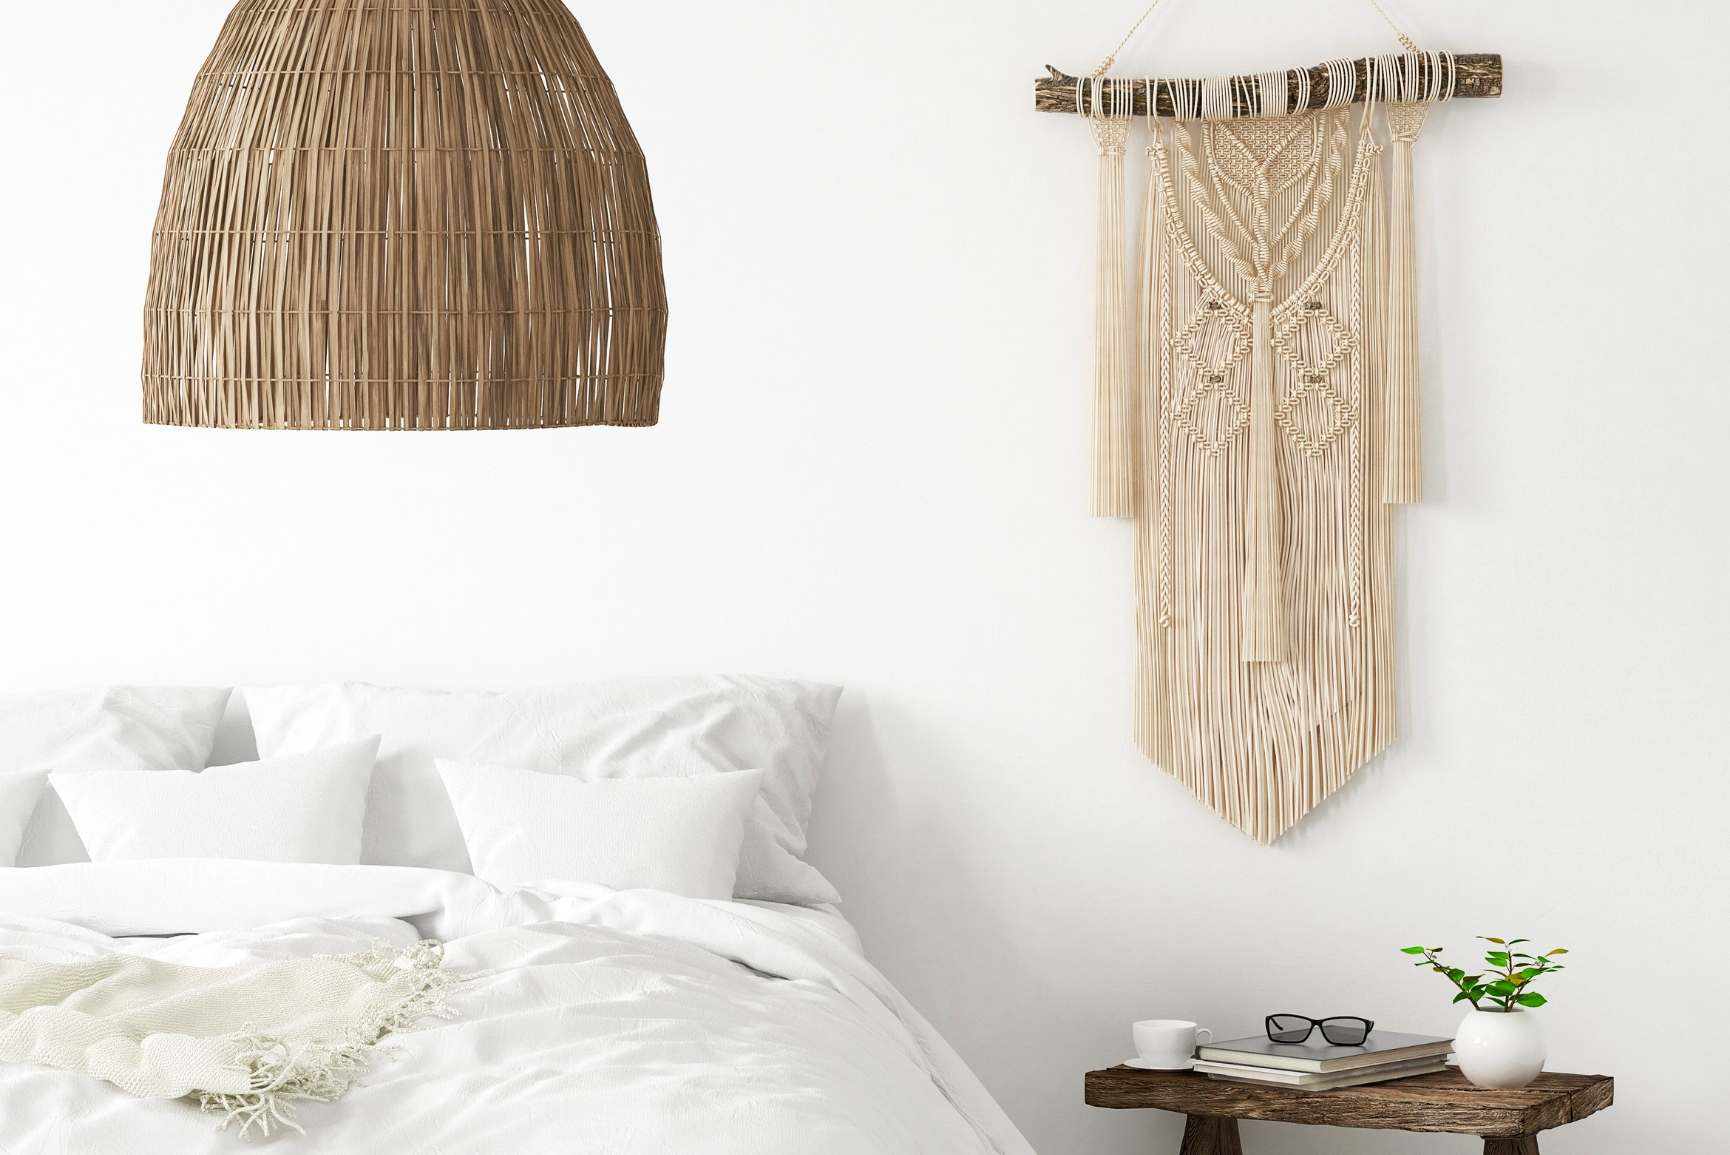 25 Easy Diy Macrame Projects For Beginners Preppy Wallpapers